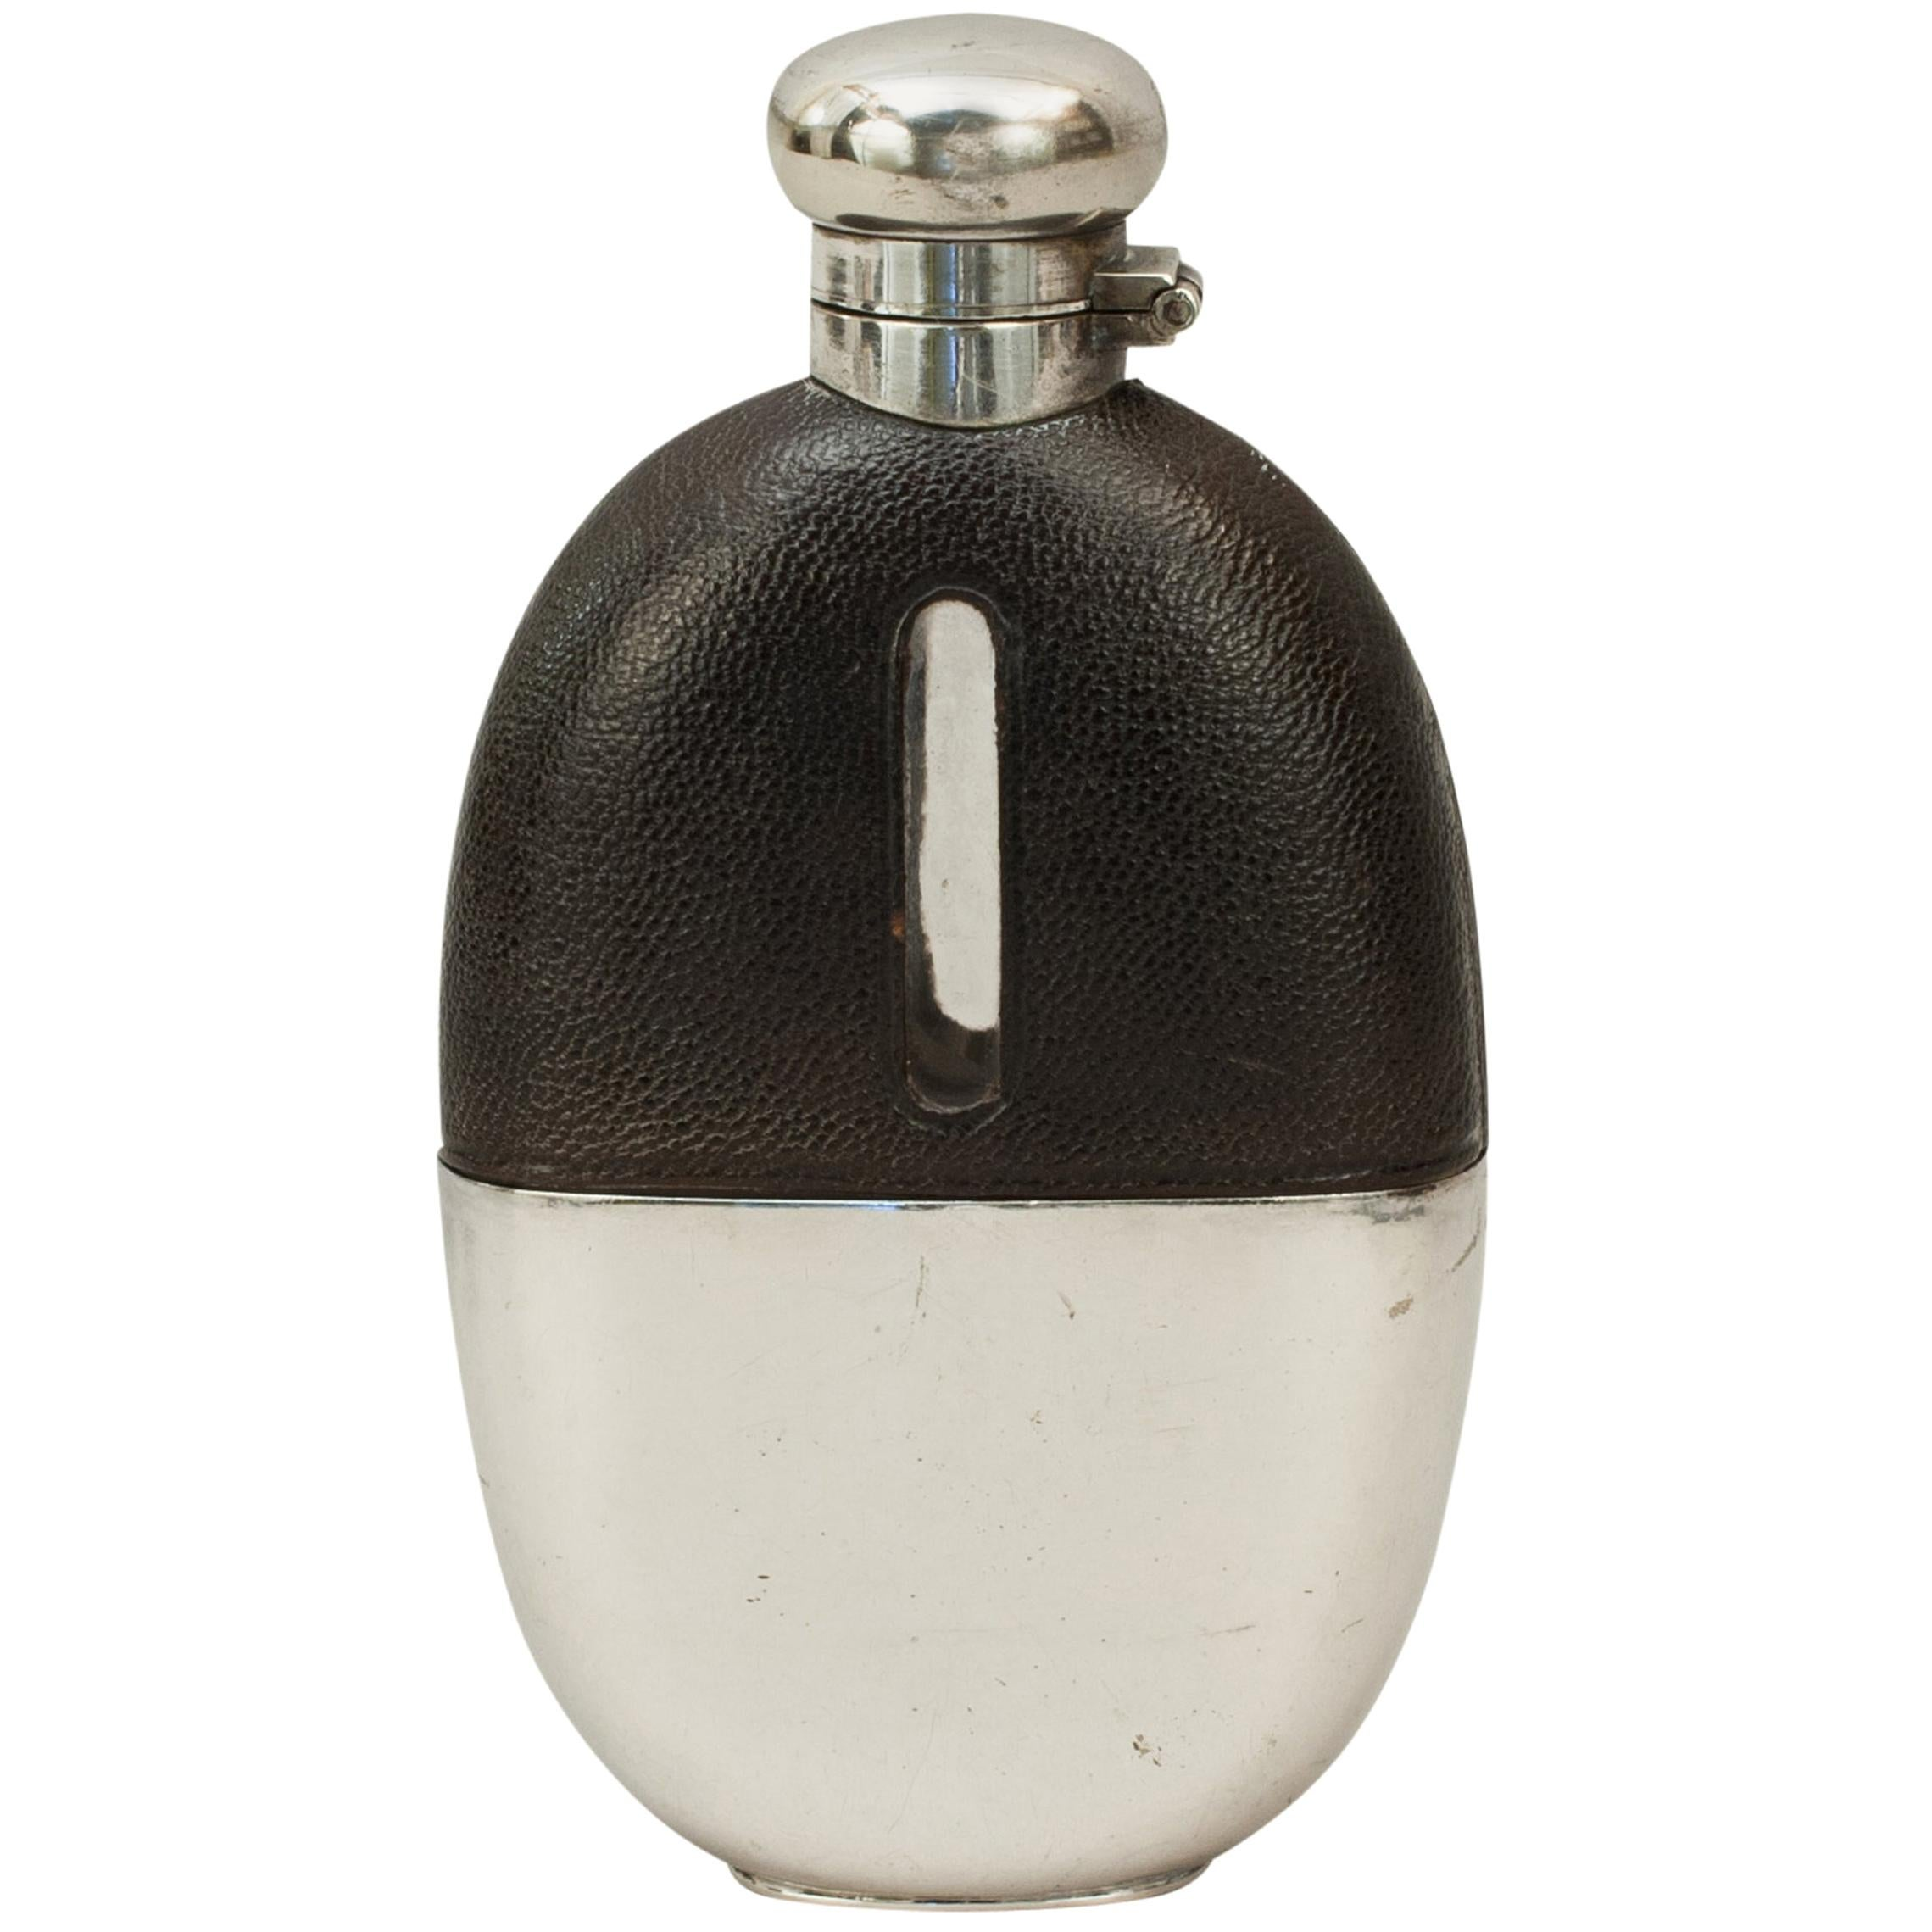 Silver Plated Hip Flask with Leather Cover and Cup